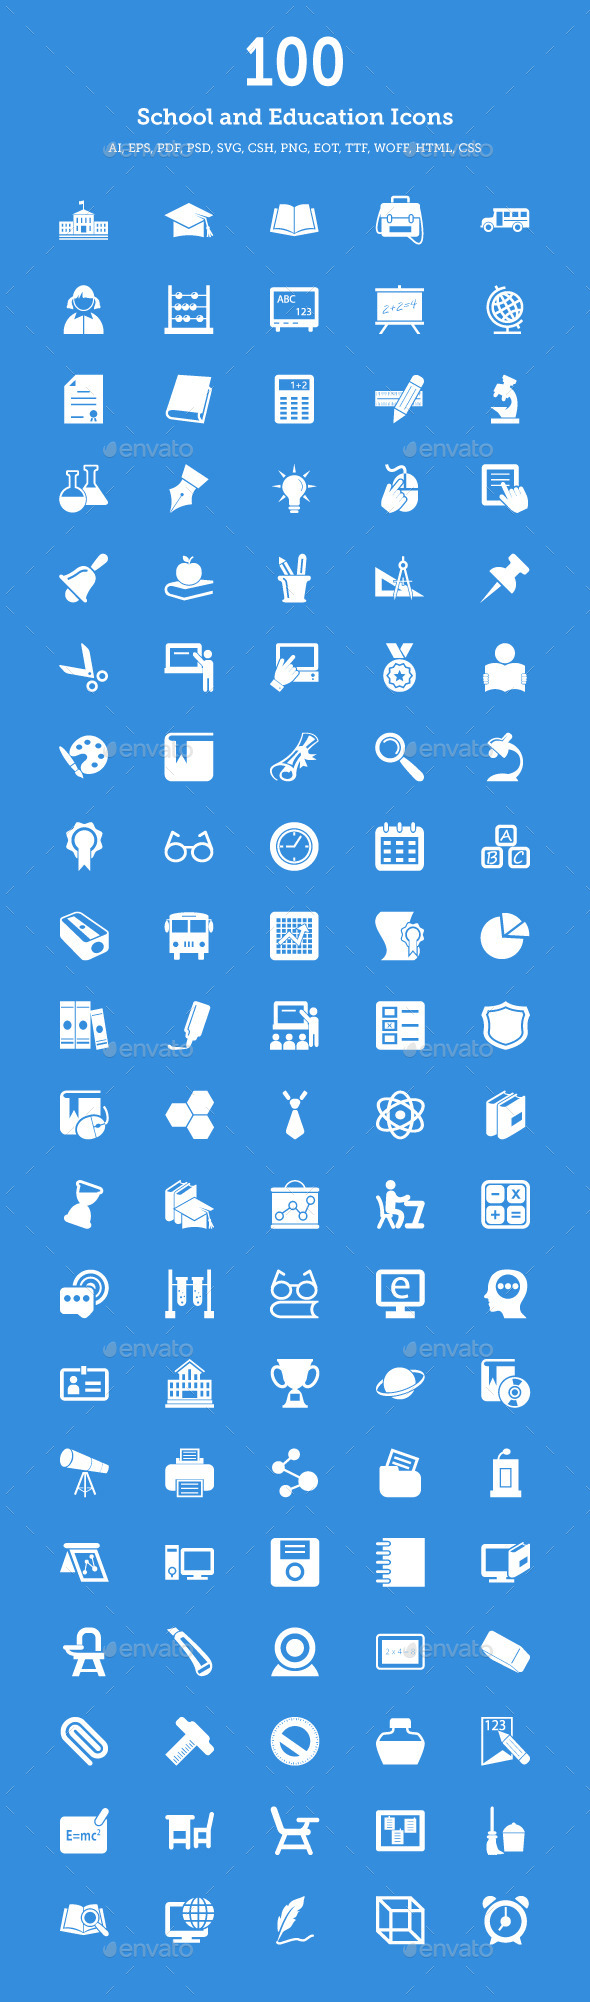 School and Education Vector Icons - Icons